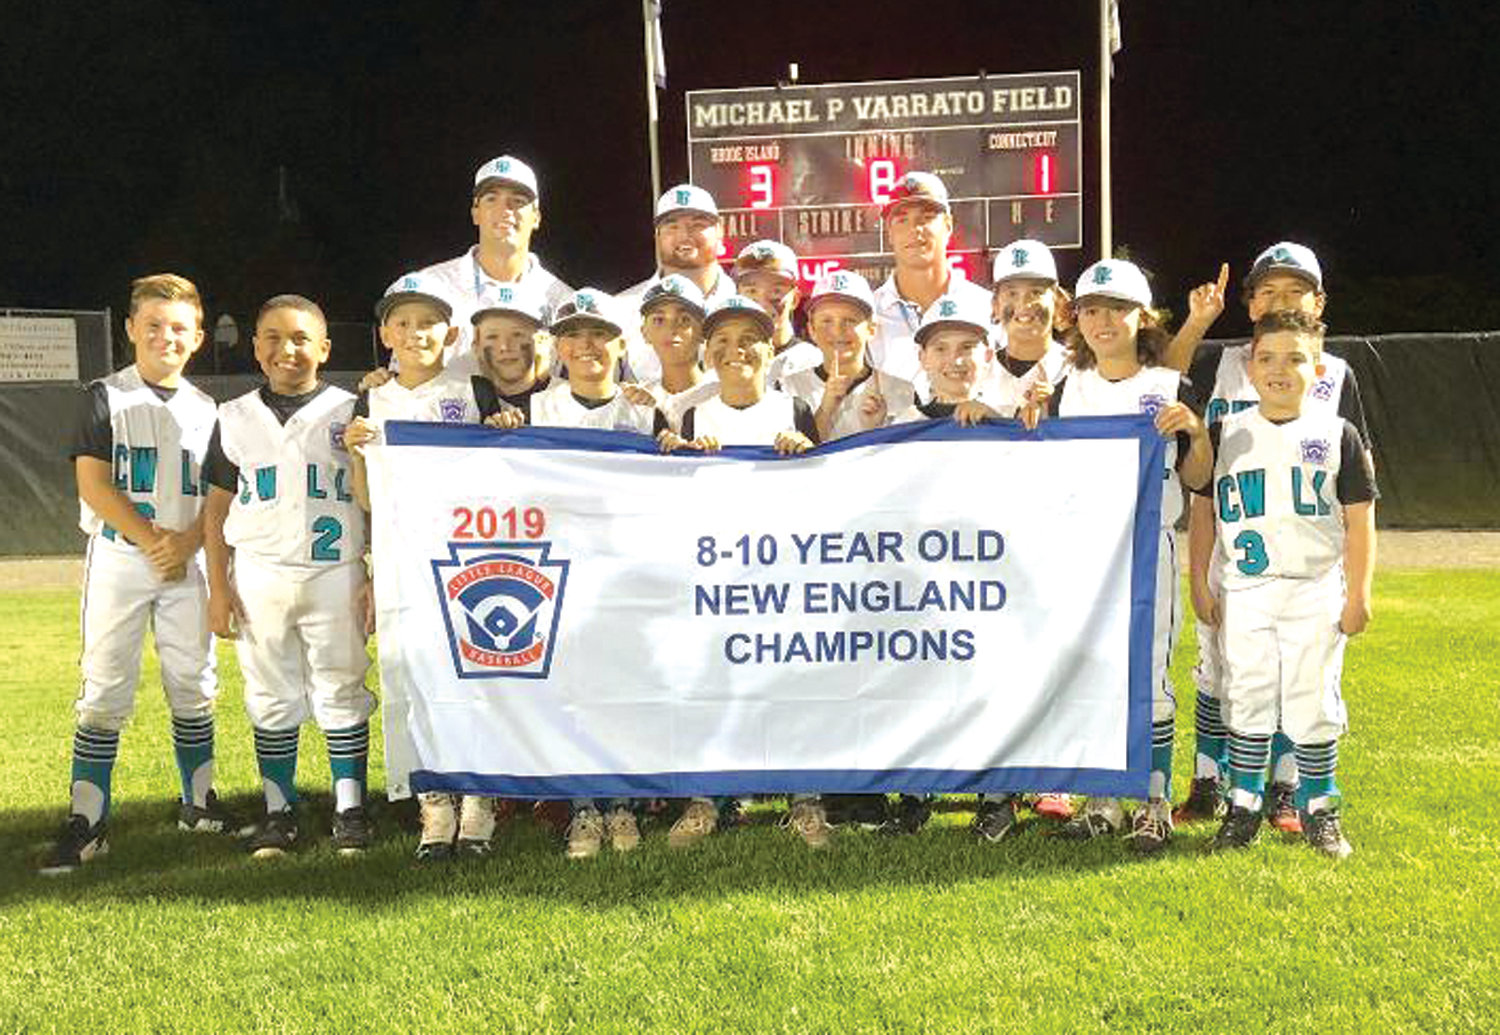 NE CHAMPS: The Cranston Western 10's after winning the regional championship over Connecticut.